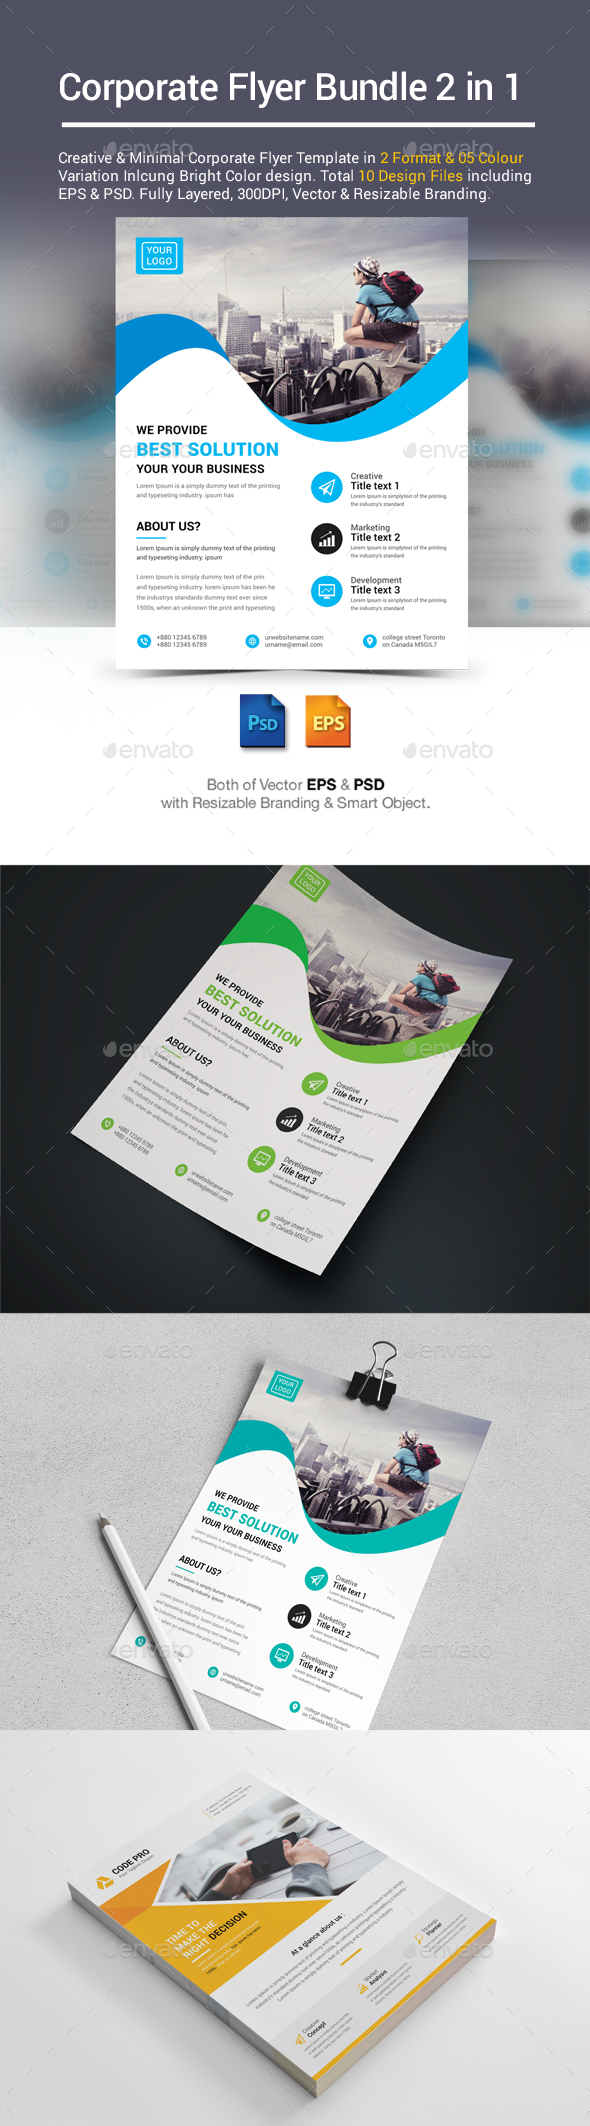 Corporate Business Flyer Bundle 2 in 1 - Corporate Flyers